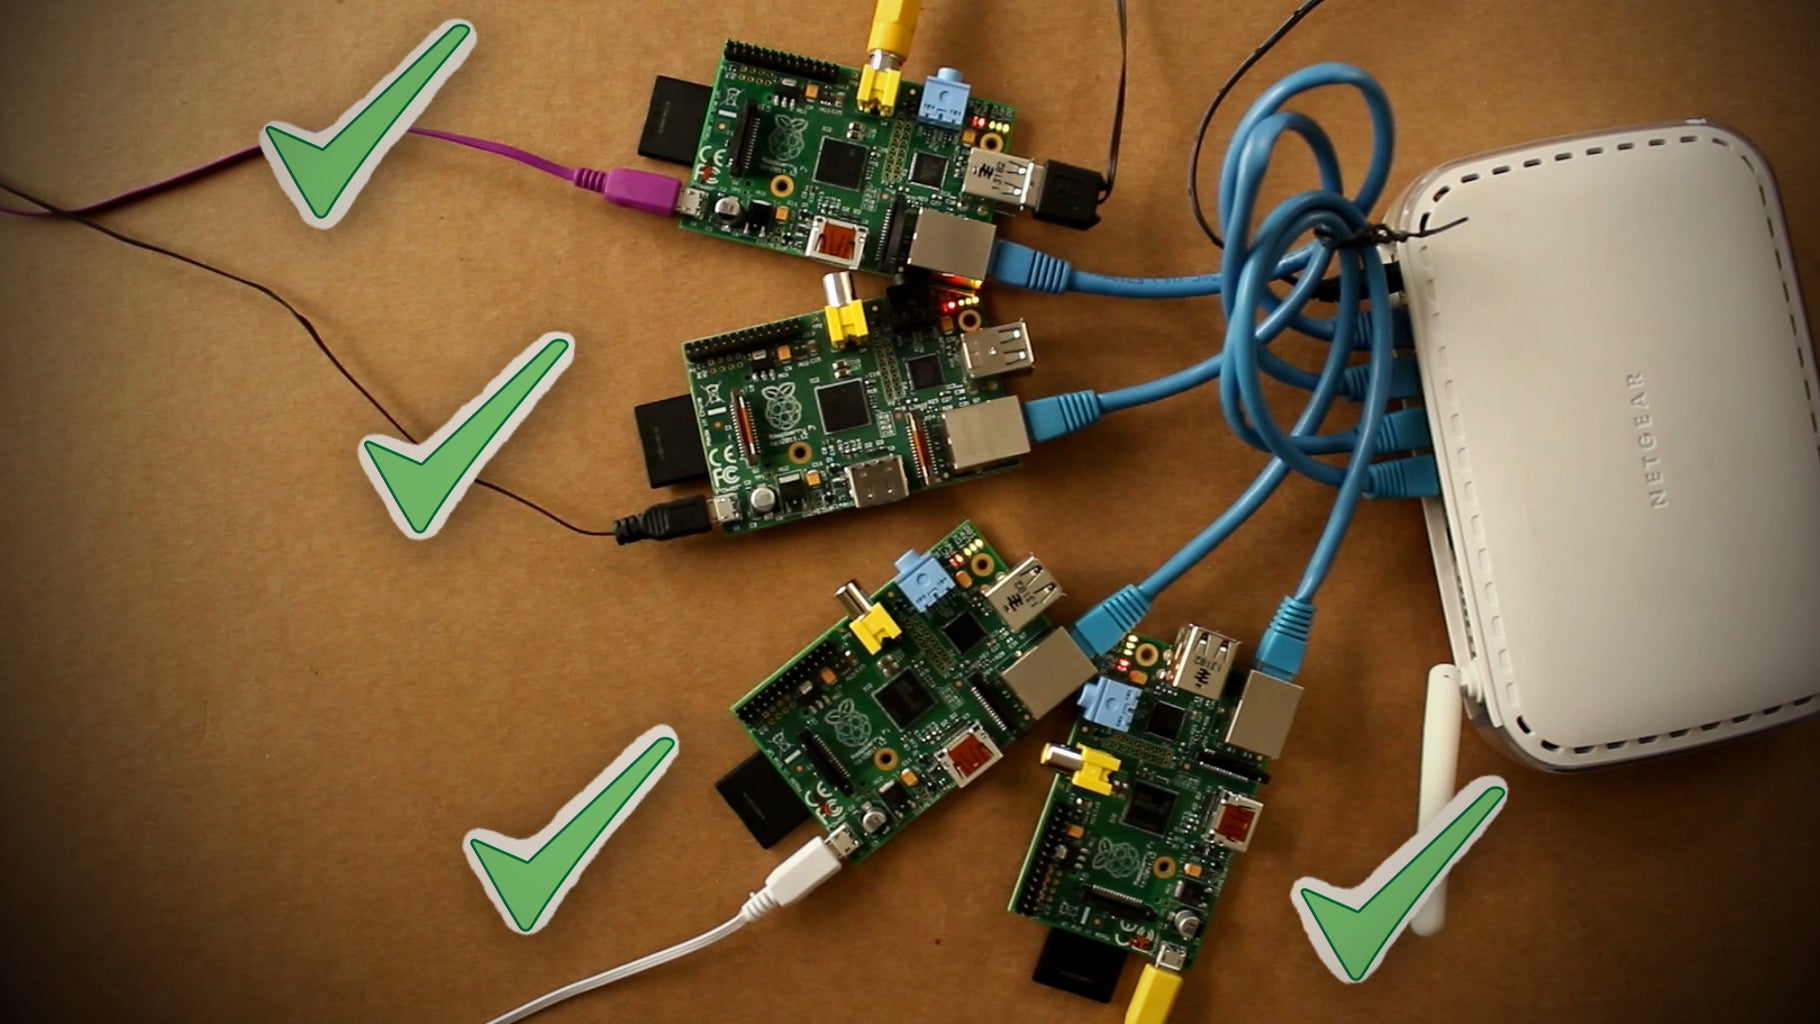 Configuring the Remaining Raspberry Pi's